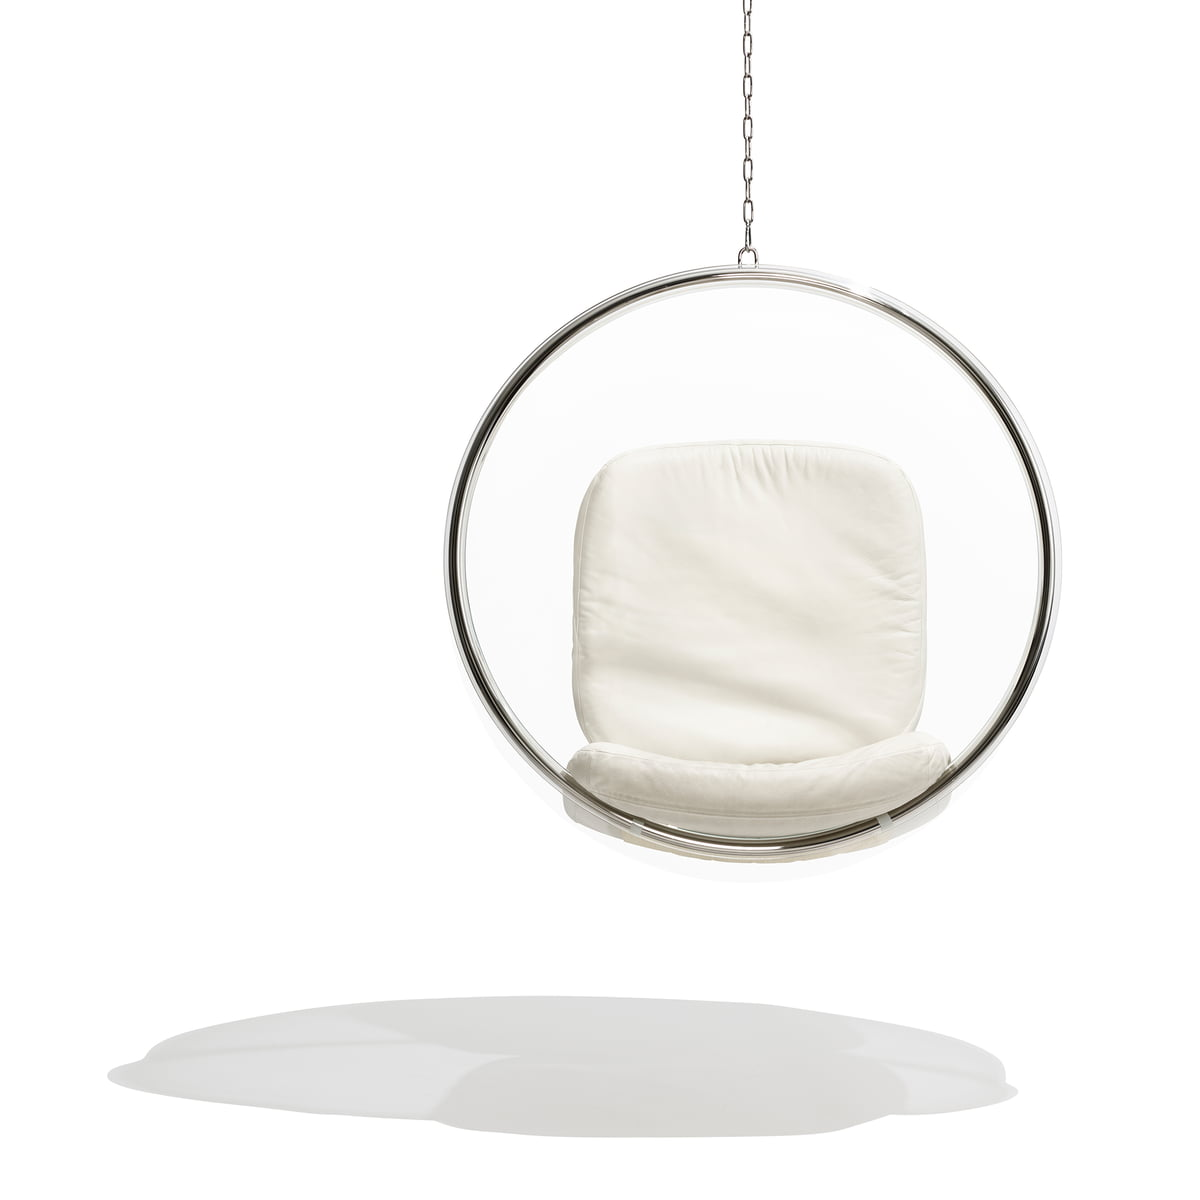 Bubble chair eero aarnio - Bubble Chair By Eero Aarnio Originals